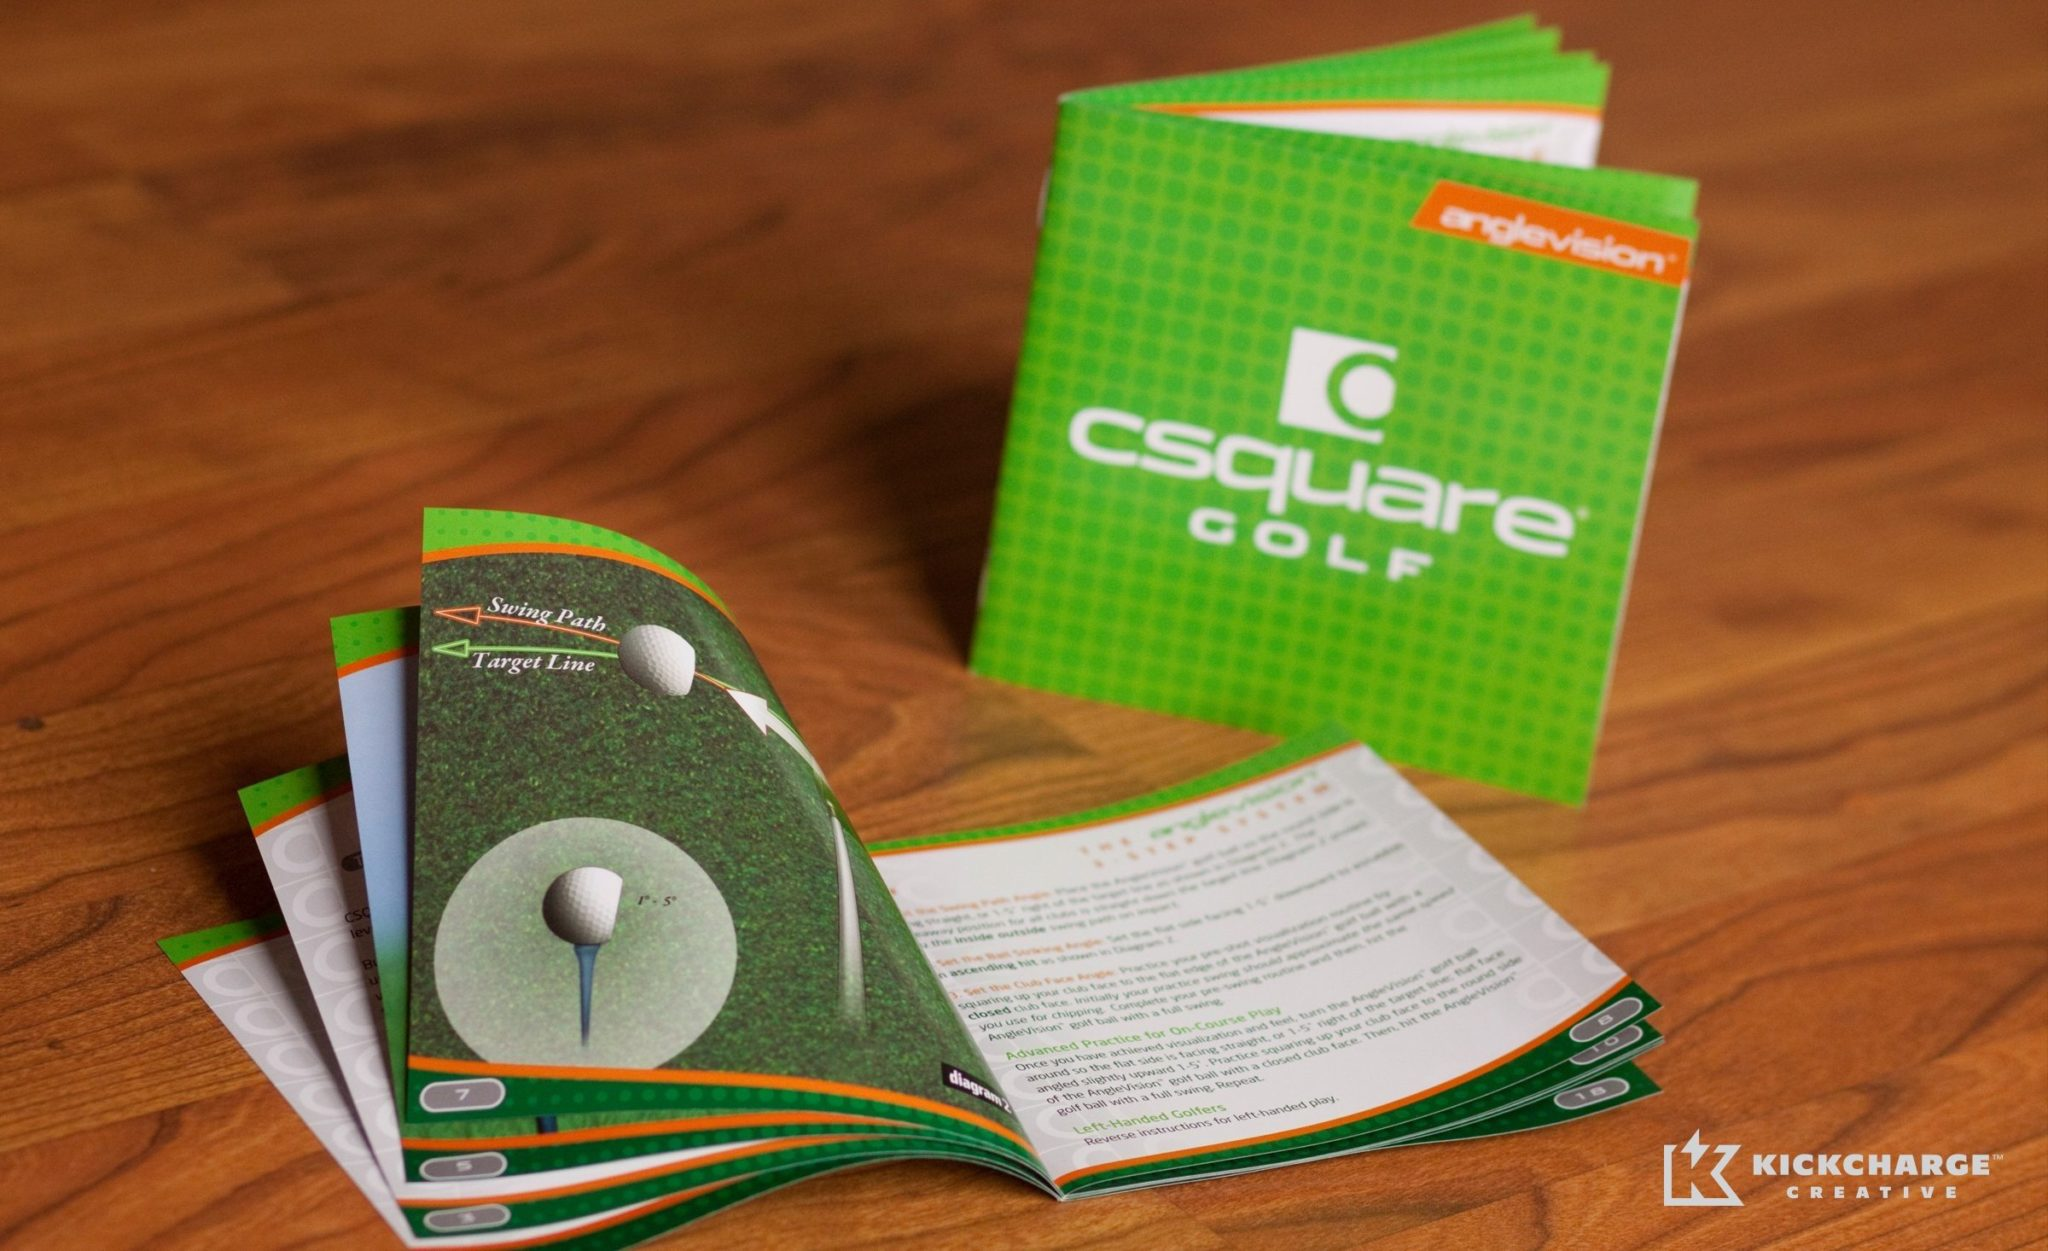 Instruction manual for CSquare Golf.